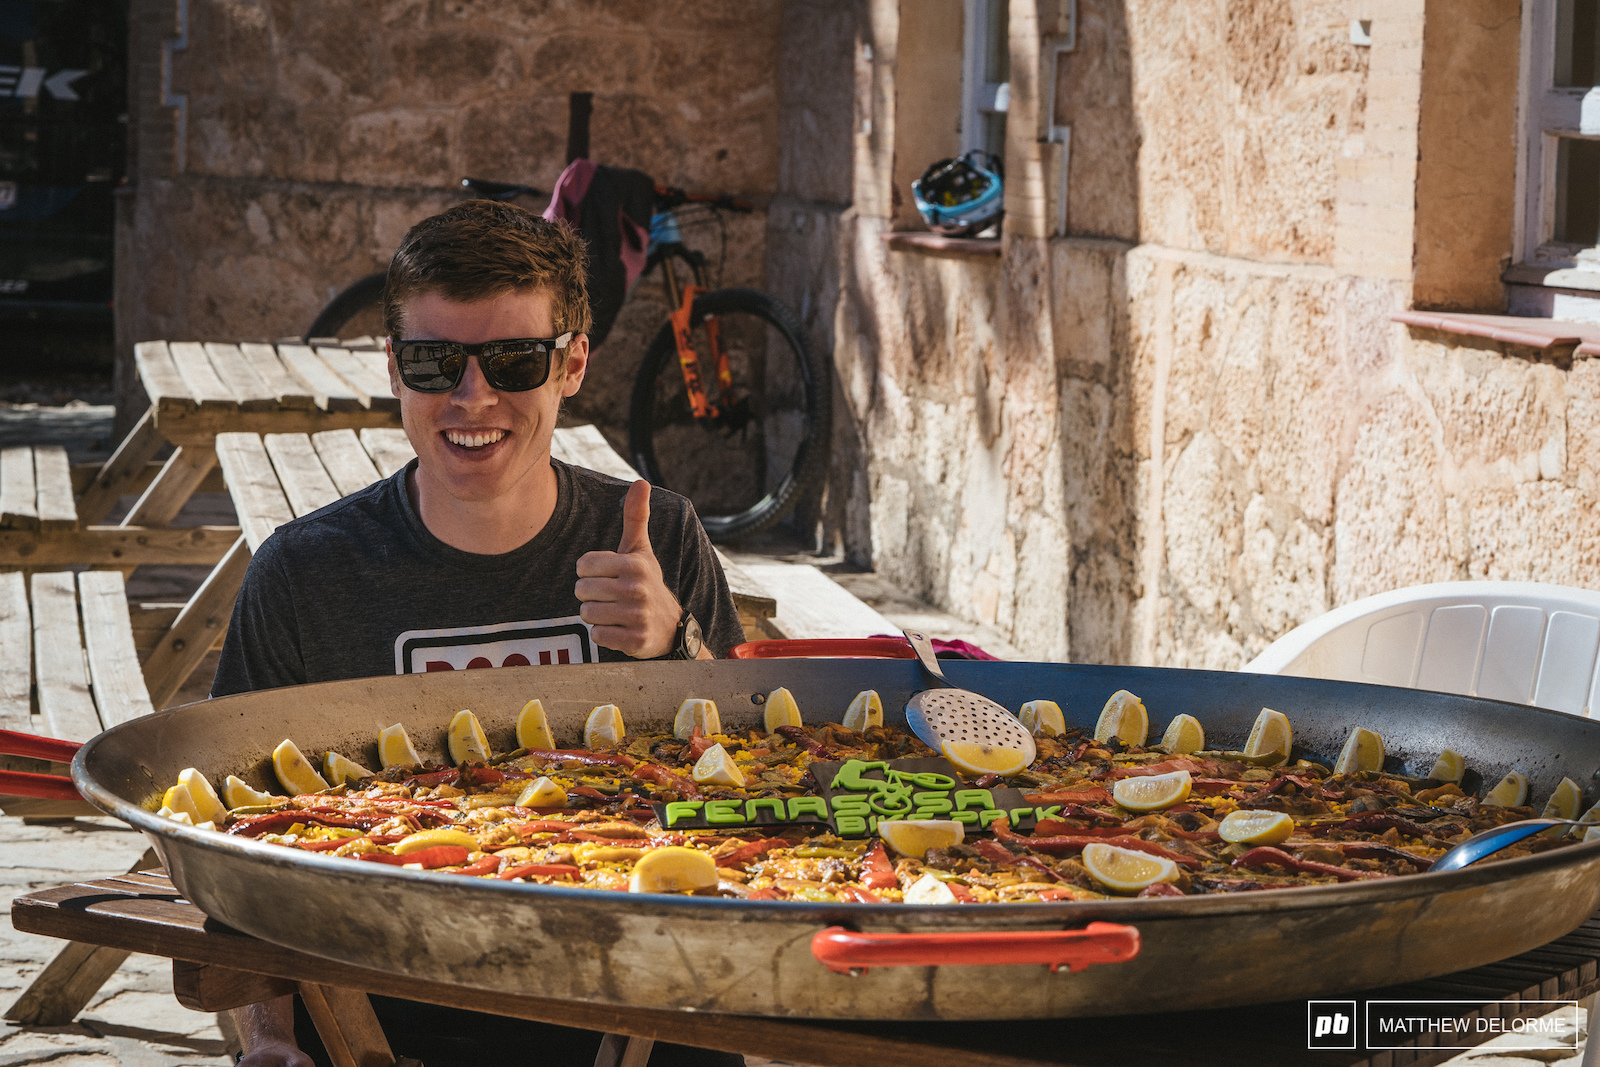 Anton could probably fit in that Paella pan.